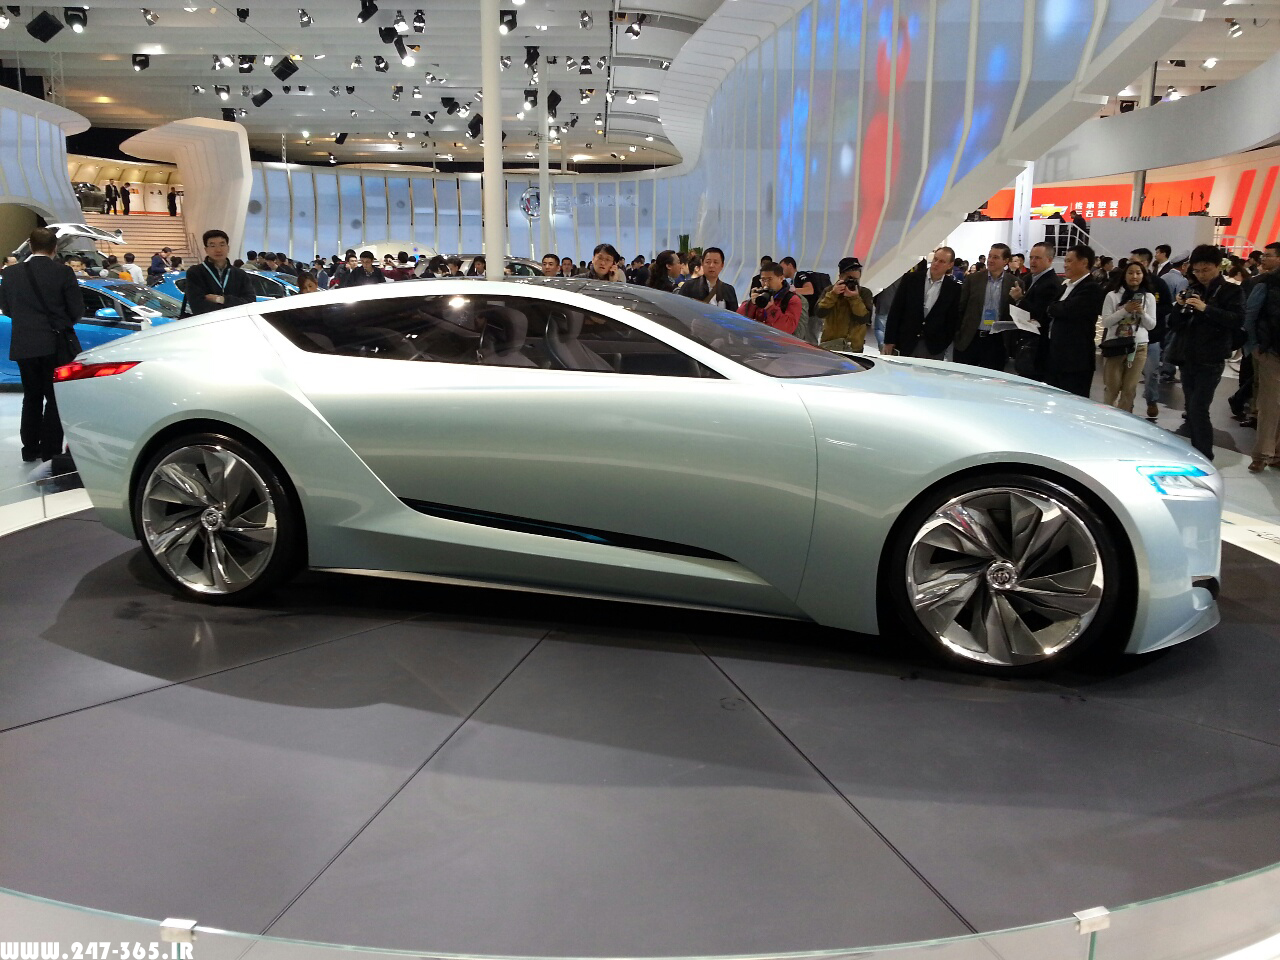 http://dl.247-365.ir/pic/automobile/buick_riviera_concept/Buick_Riviera_Concept_06.jpg